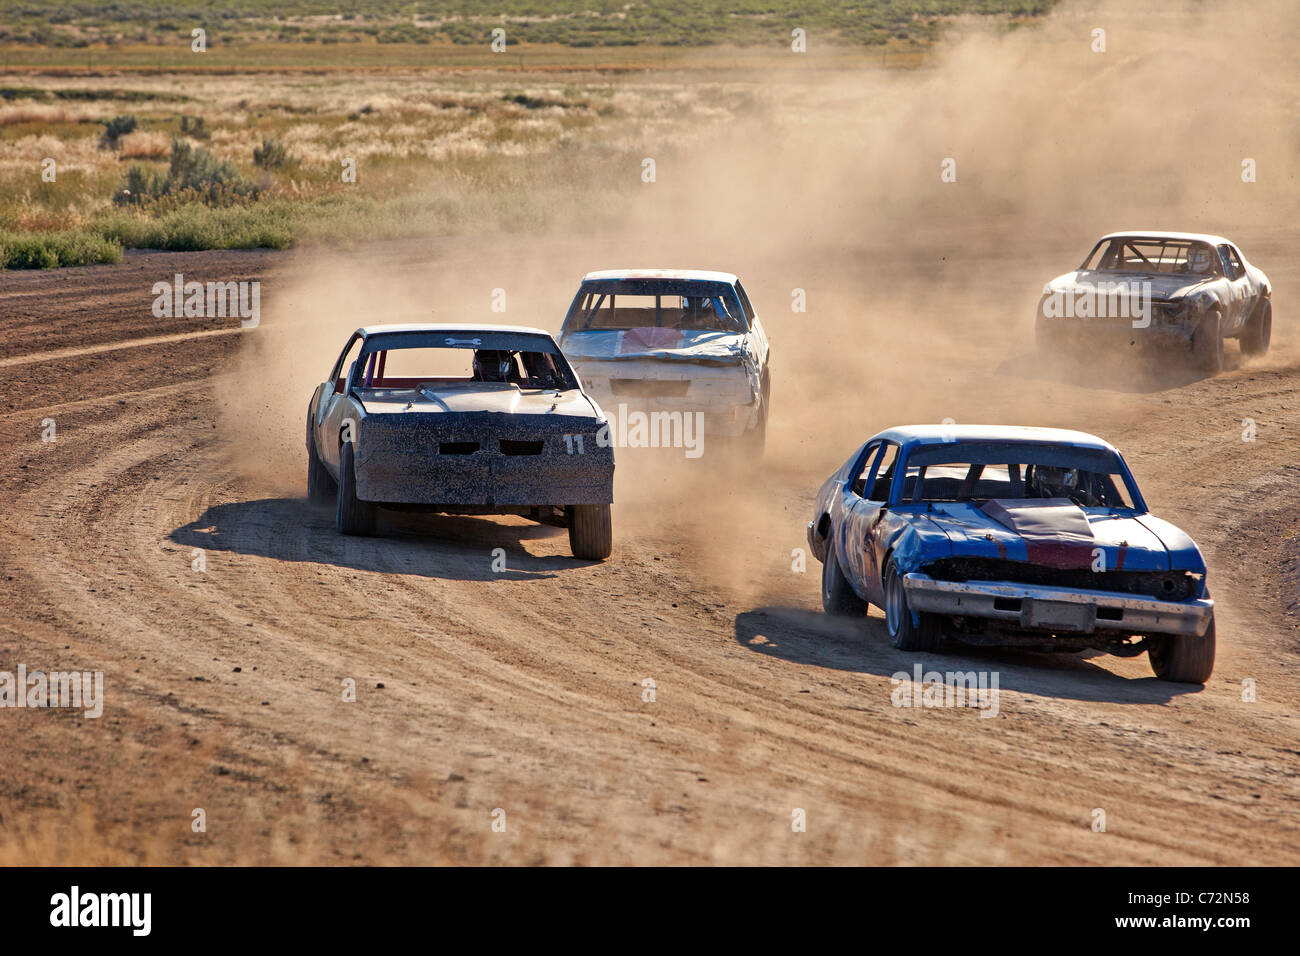 Race Cars High Speed Dangerous On Dirt Oval Course Highly